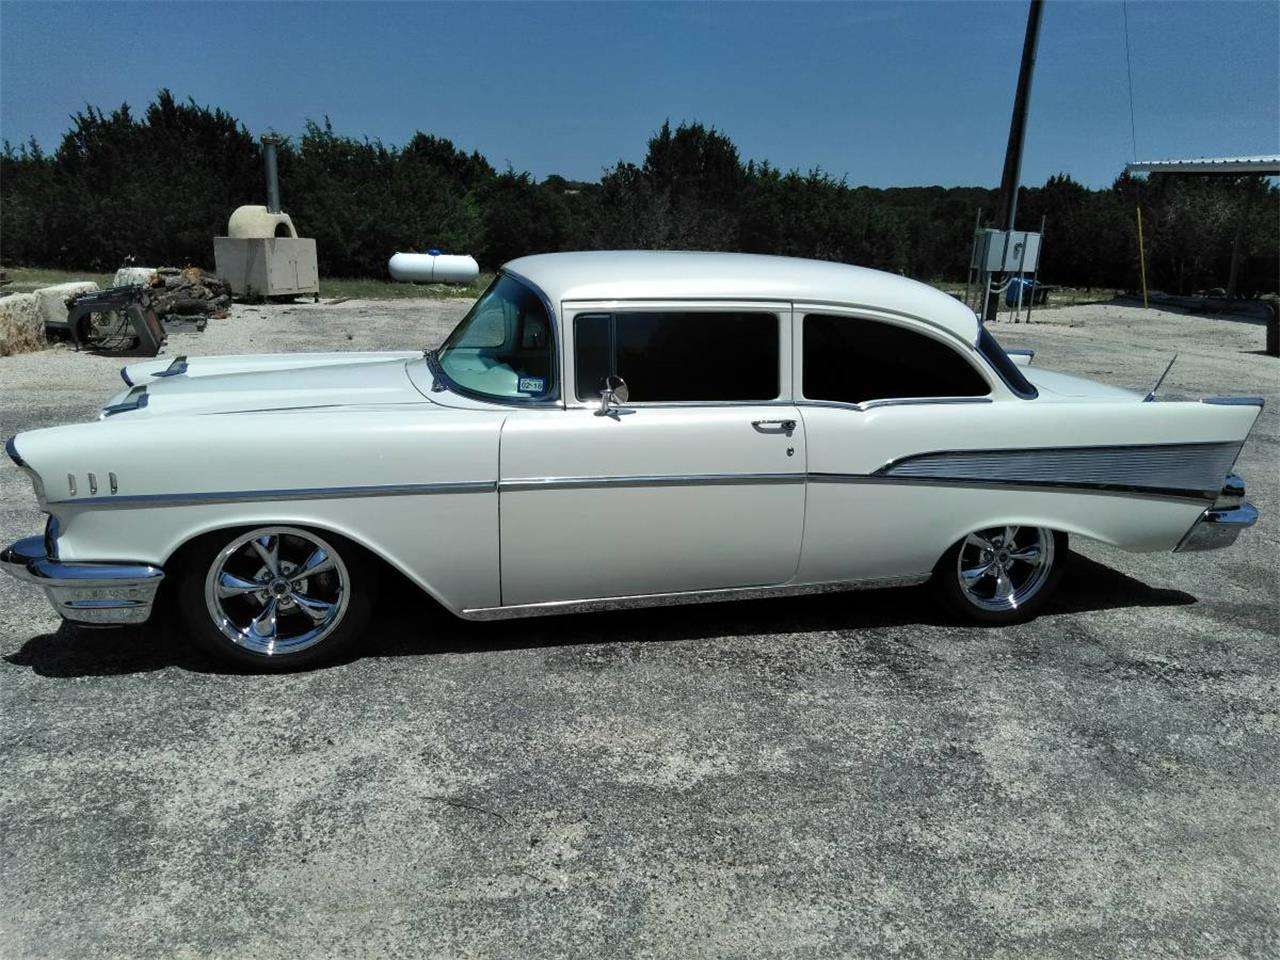 Large Picture of 1957 Bel Air located in Lampasas  Texas - $50,000.00 Offered by a Private Seller - OUCI